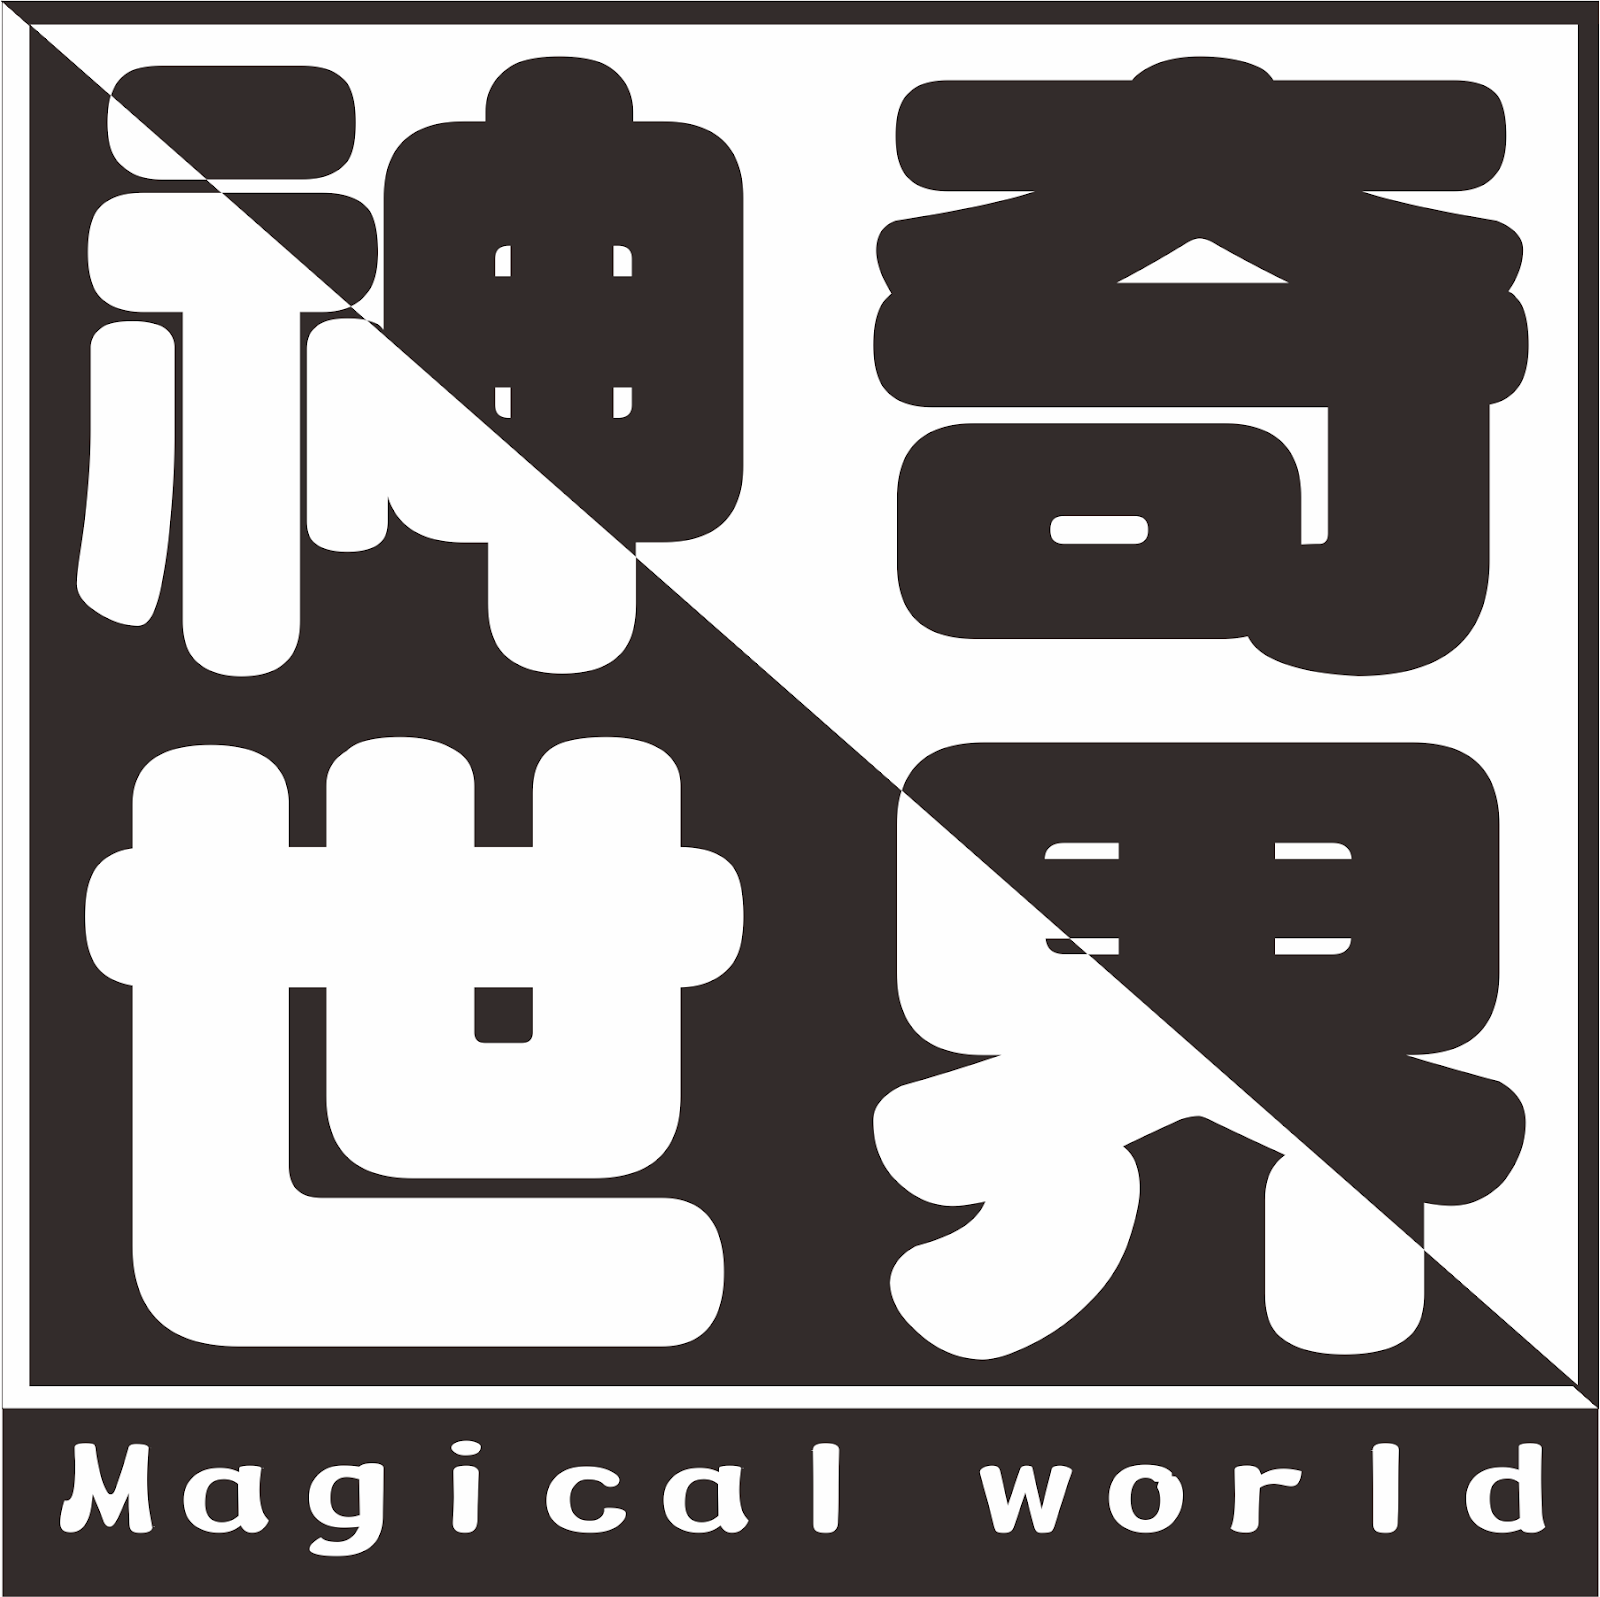 神奇世界│Magical world 官方網站